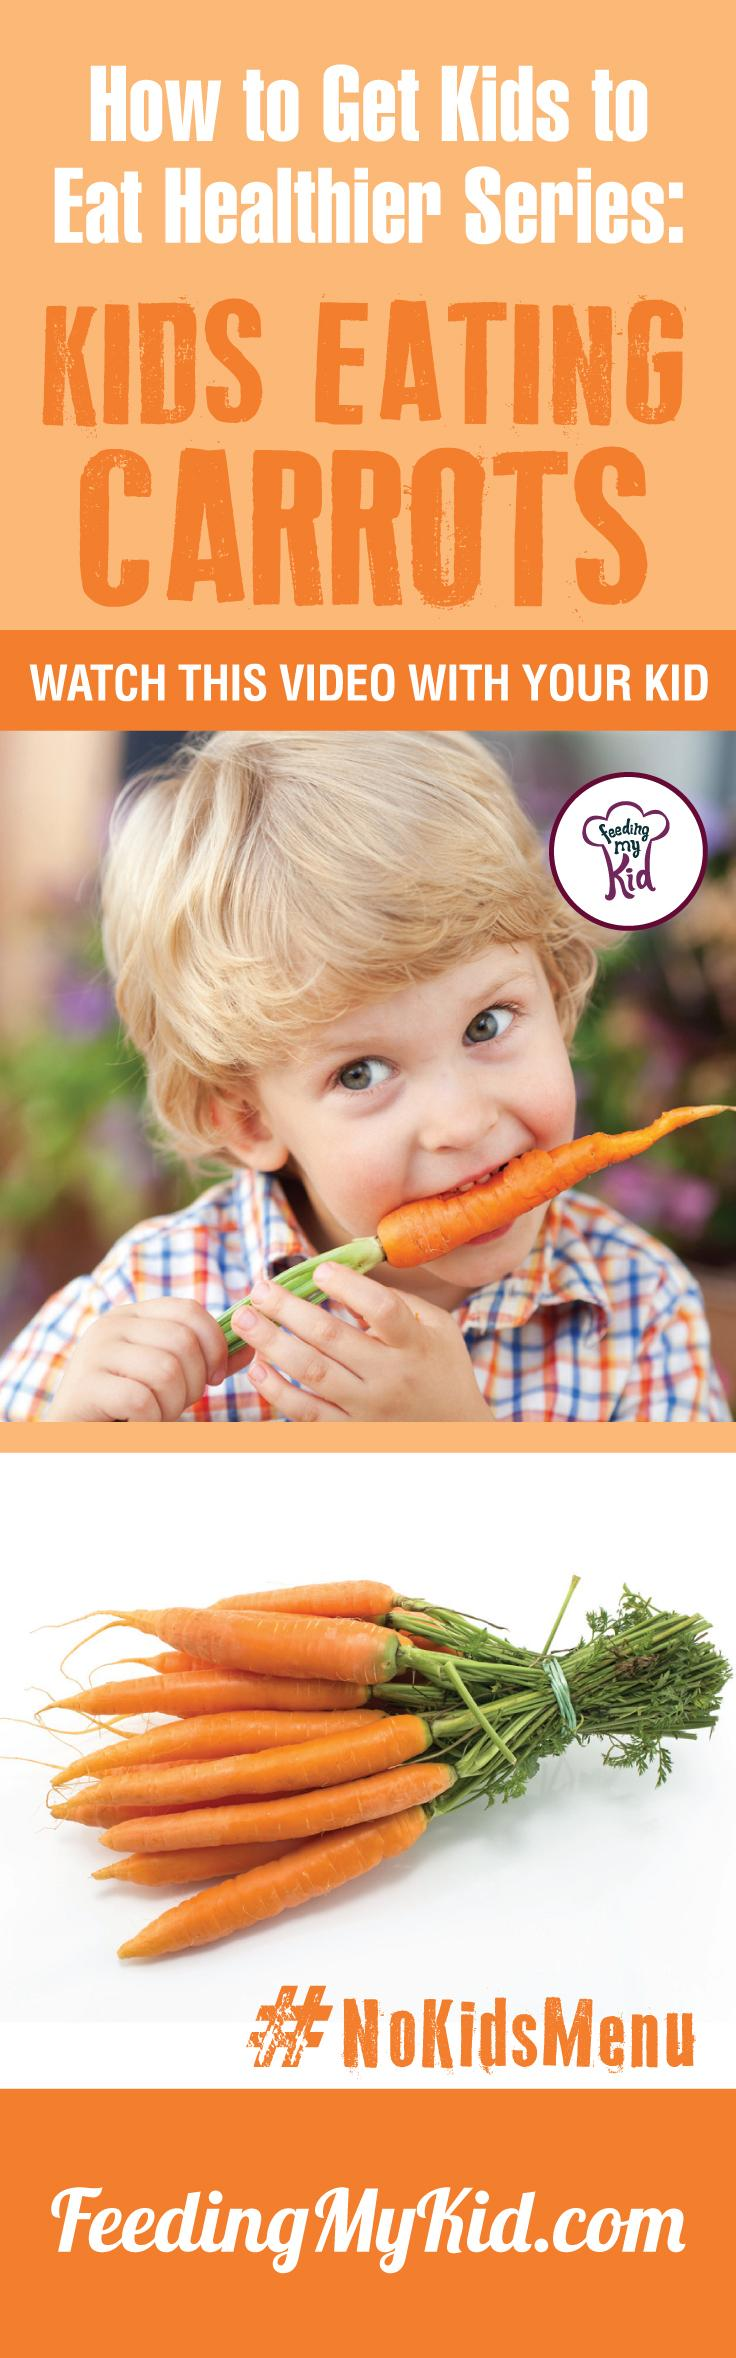 Want your kids to eat carrots? Teach your kids how to eat more vegetables and fruits. Watch these videos with your kids of kids eating veggies and fruits and get your kids to eat veggies and fruits. Find out how it works here. Feeding My Kid is a filled with all the information you need about how to raise your kids, from healthy tips to nutritious recipes. #pickyeating #getkidstoeat #carrots #nokidsmenu